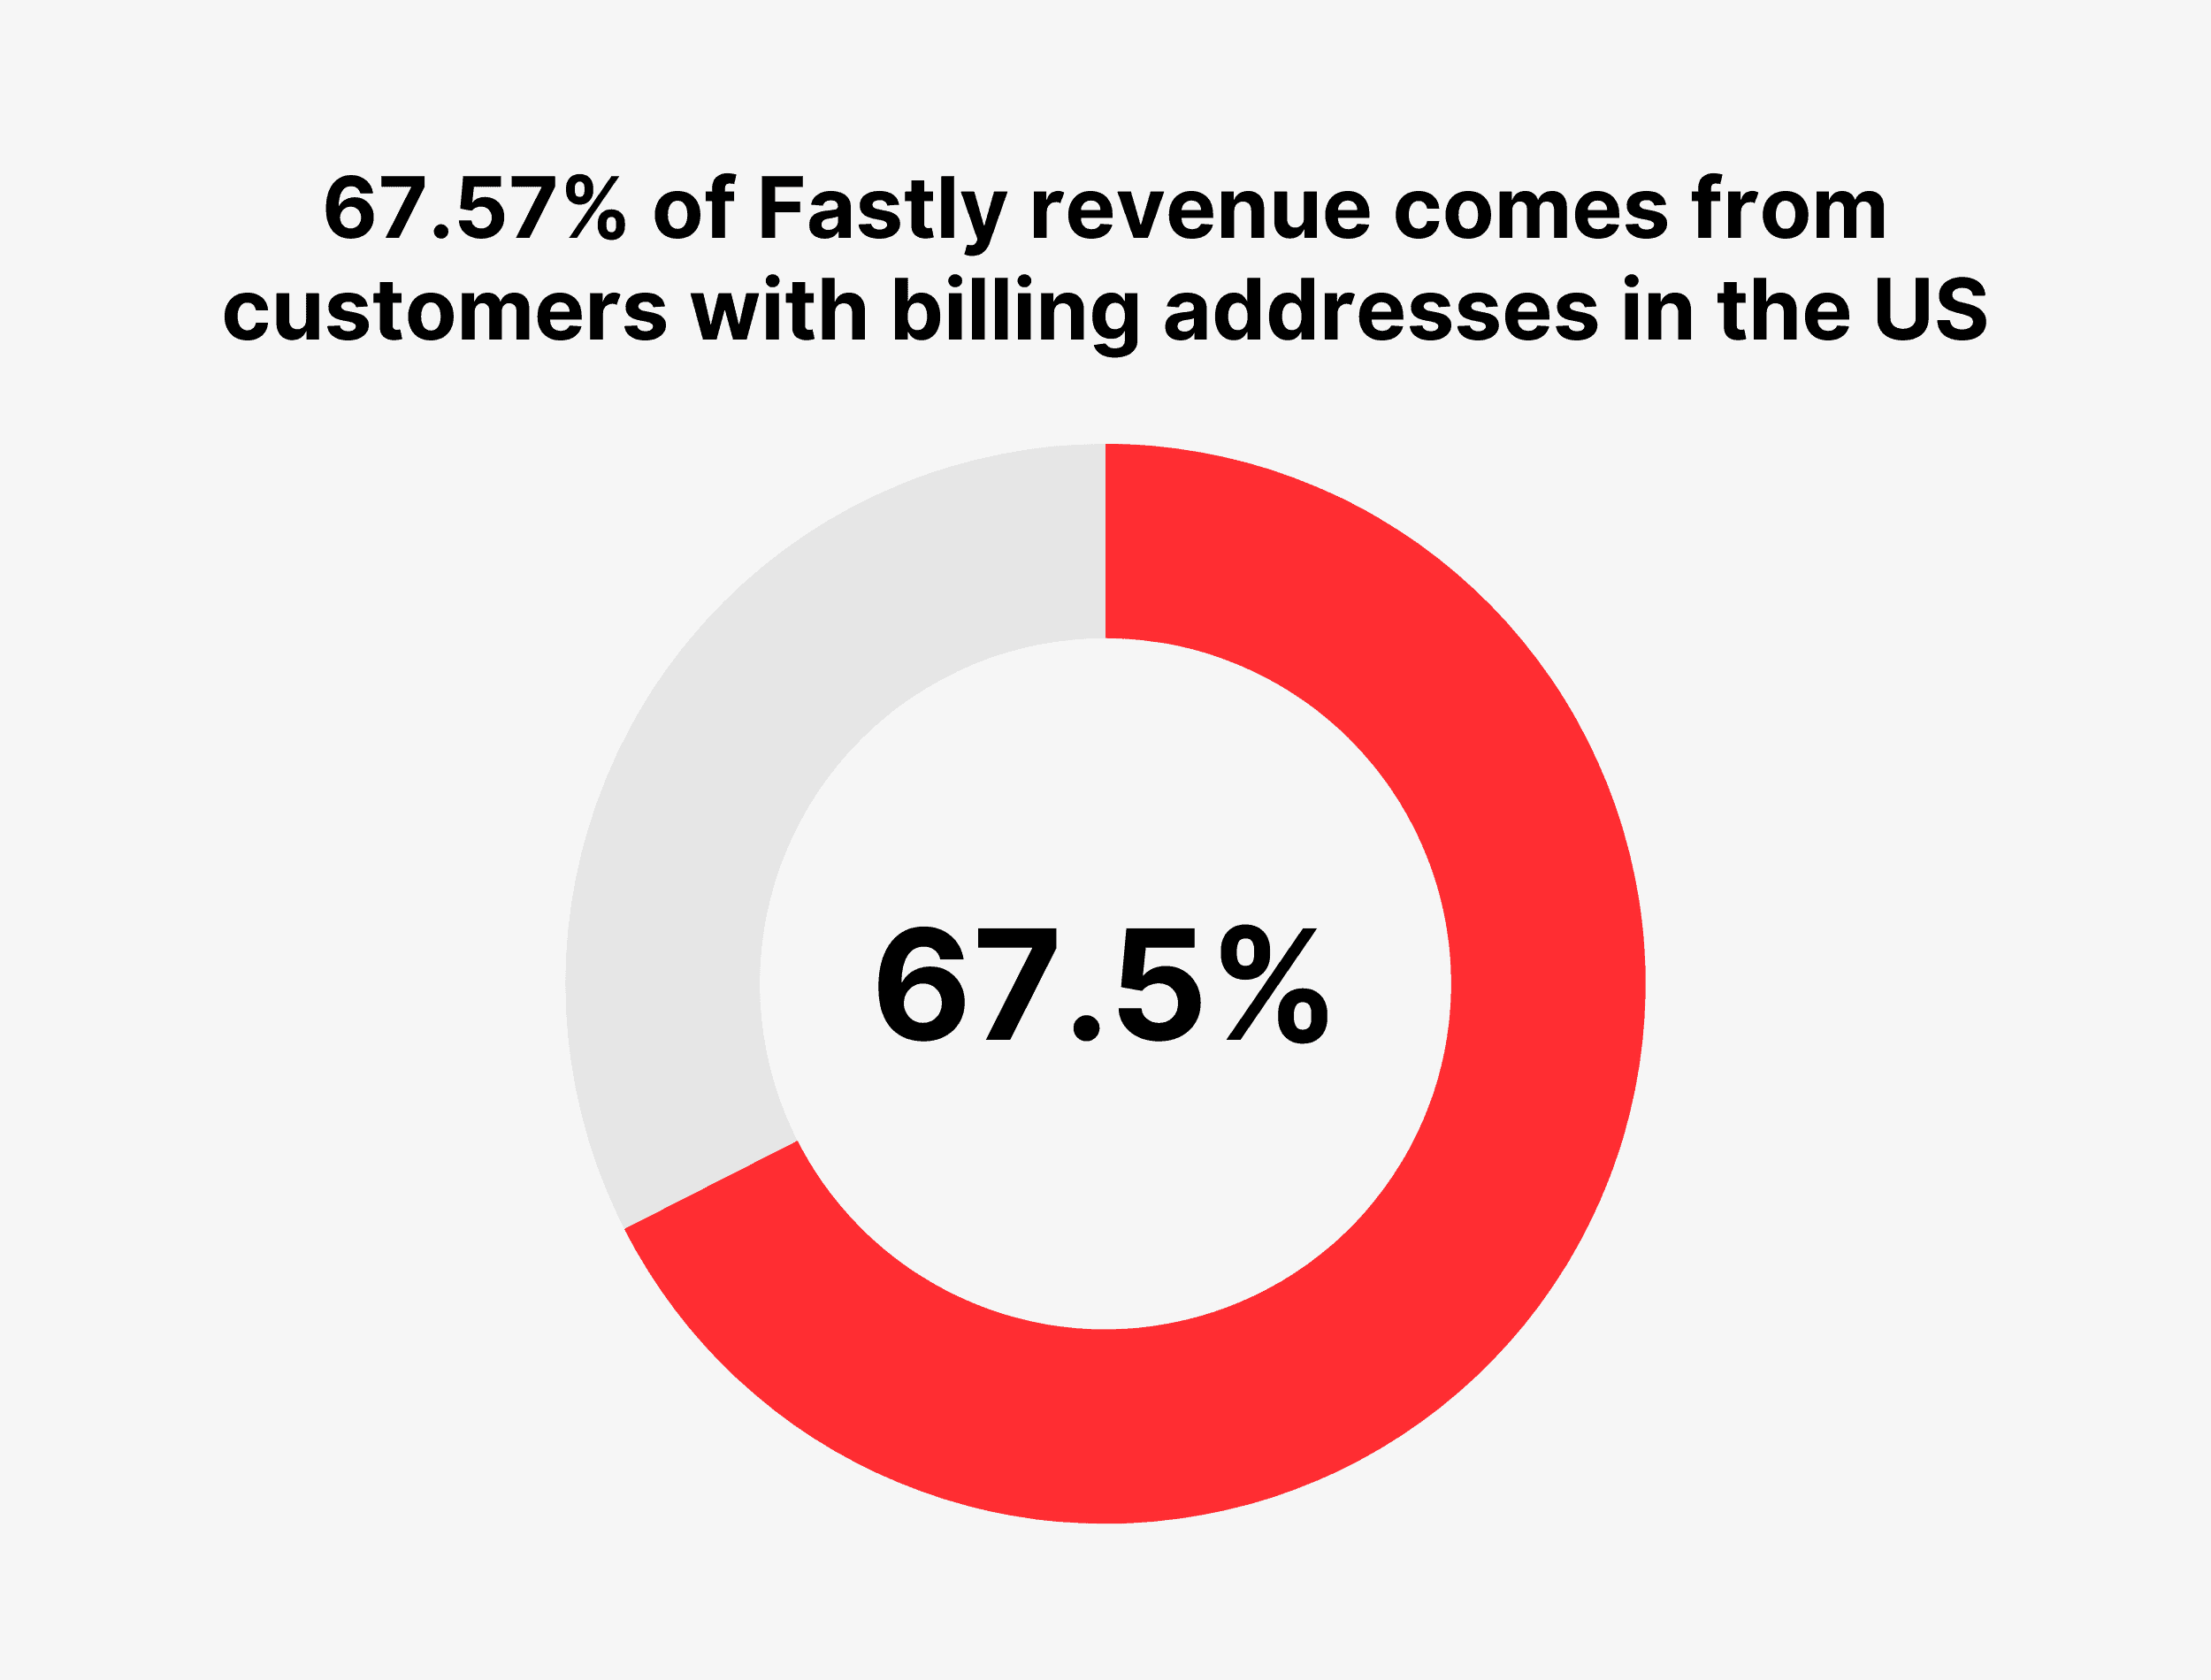 67.57% of Fastly revenue comes from customers with billing addresses in the US